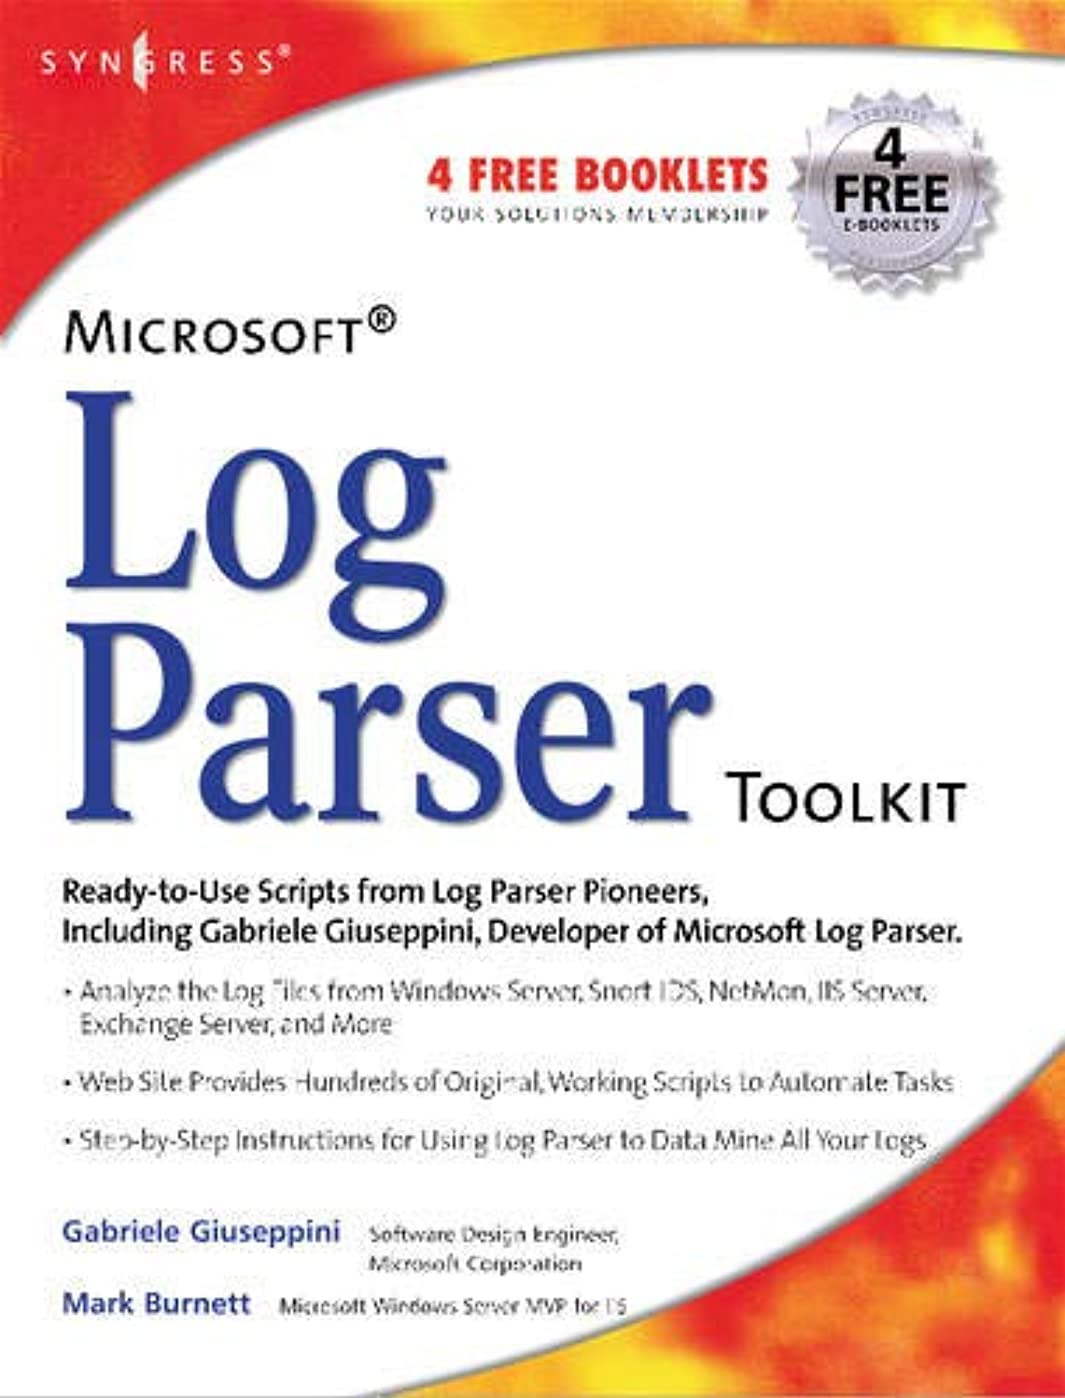 気体の思い出す福祉Microsoft Log Parser Toolkit: A Complete Toolkit for Microsoft's Undocumented Log Analysis Tool